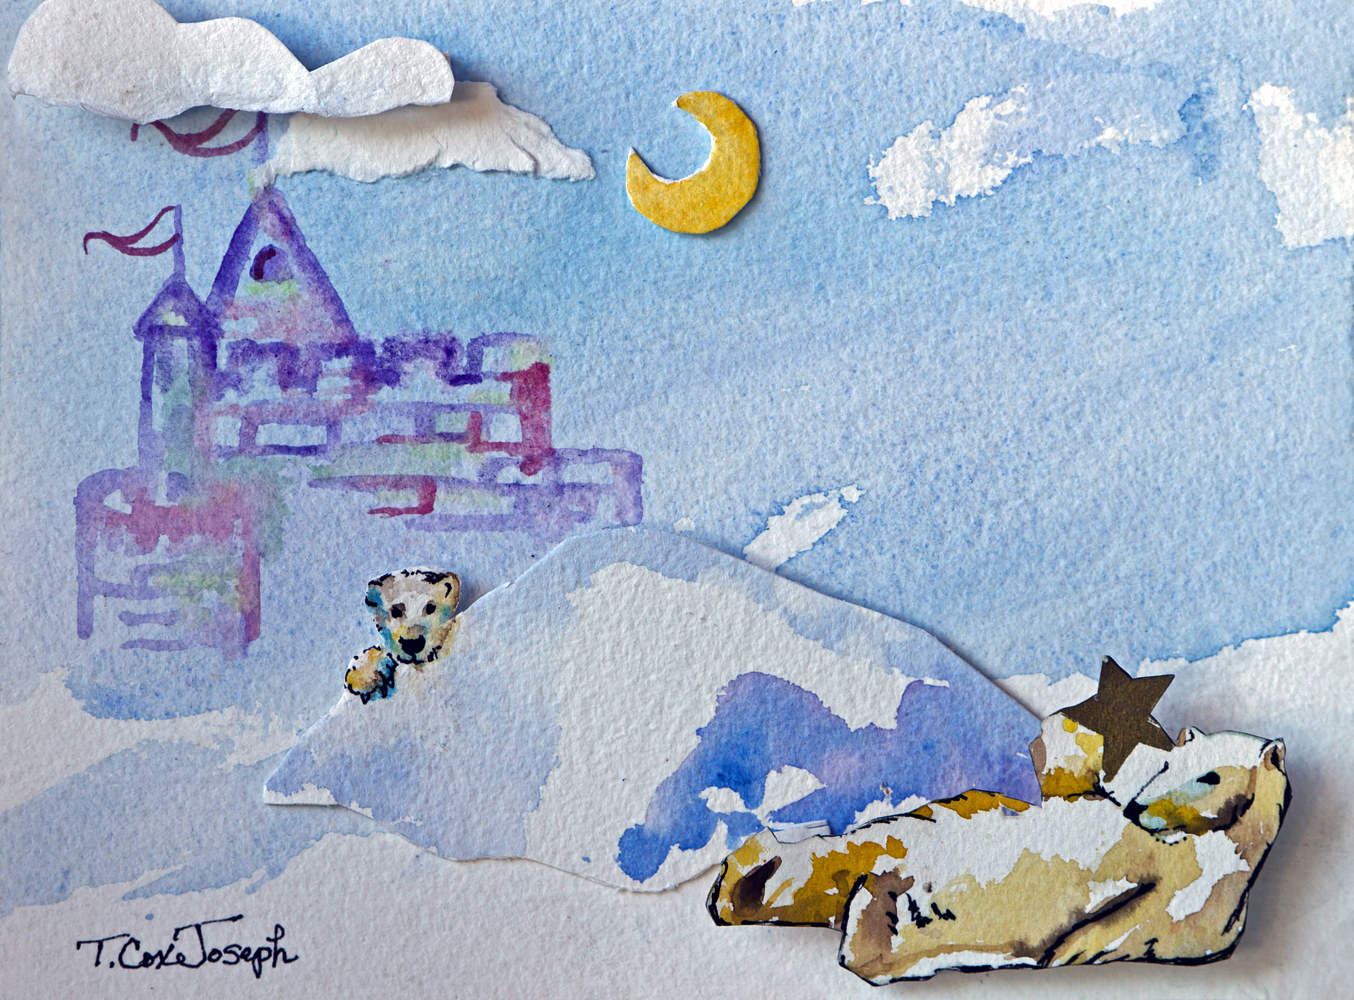 Polar Bears 3D castle by Terry Joseph